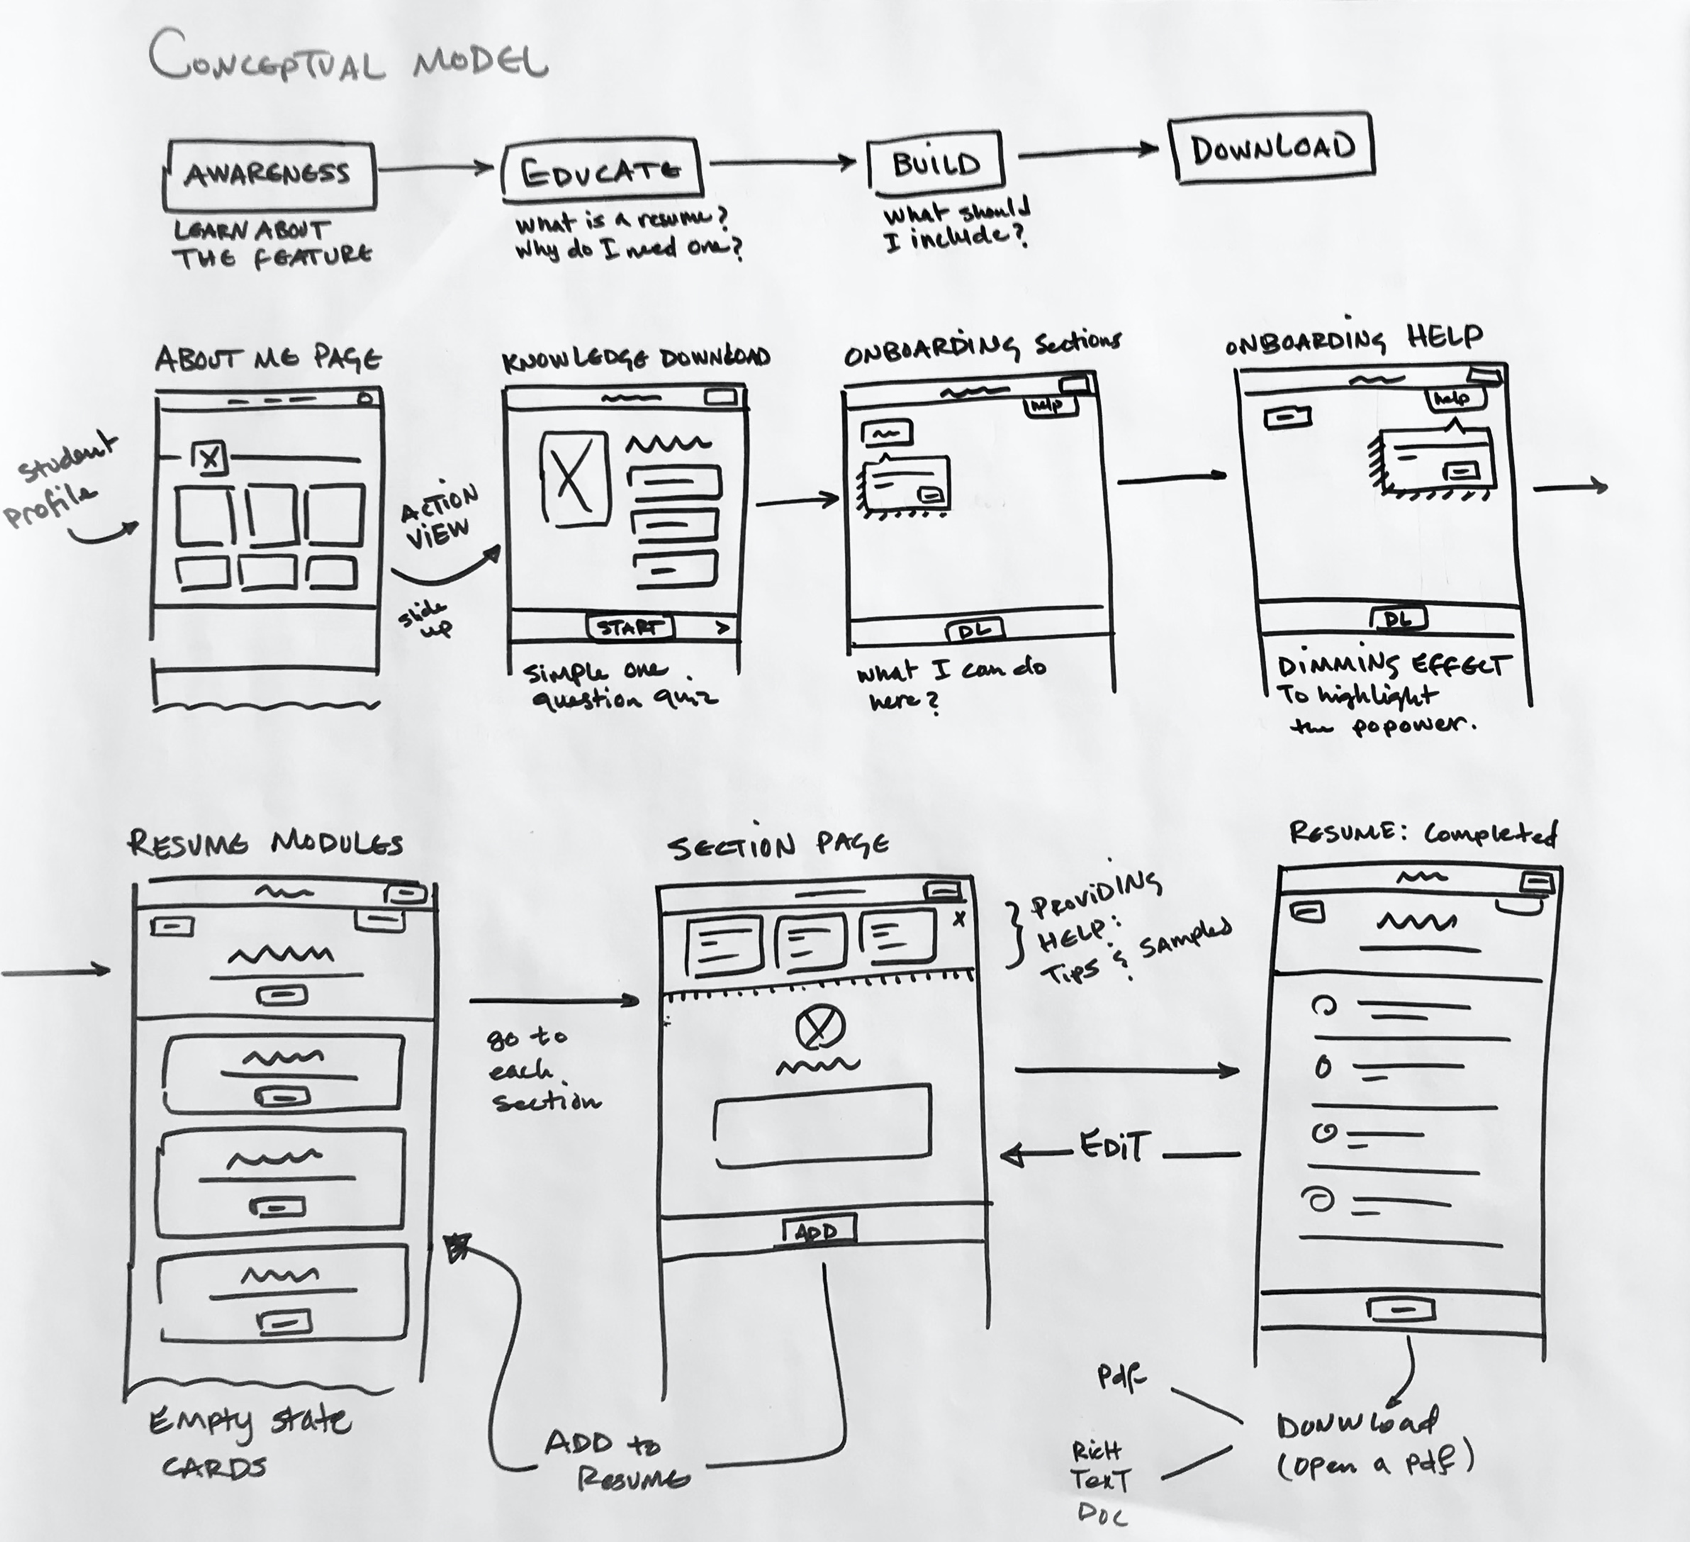 Conceptual model and the user flow wireframes